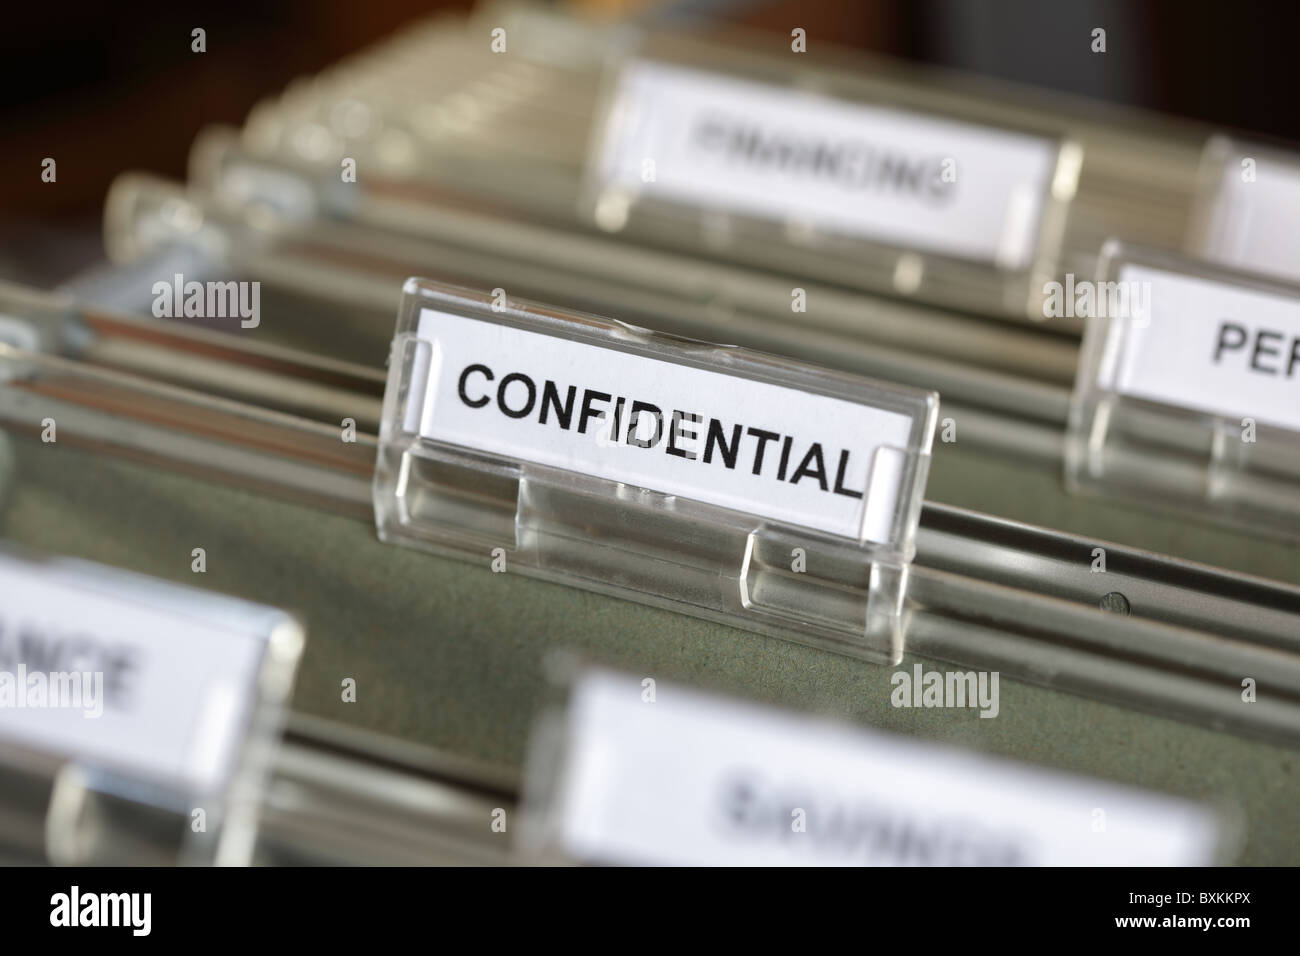 Confidential file - Stock Image